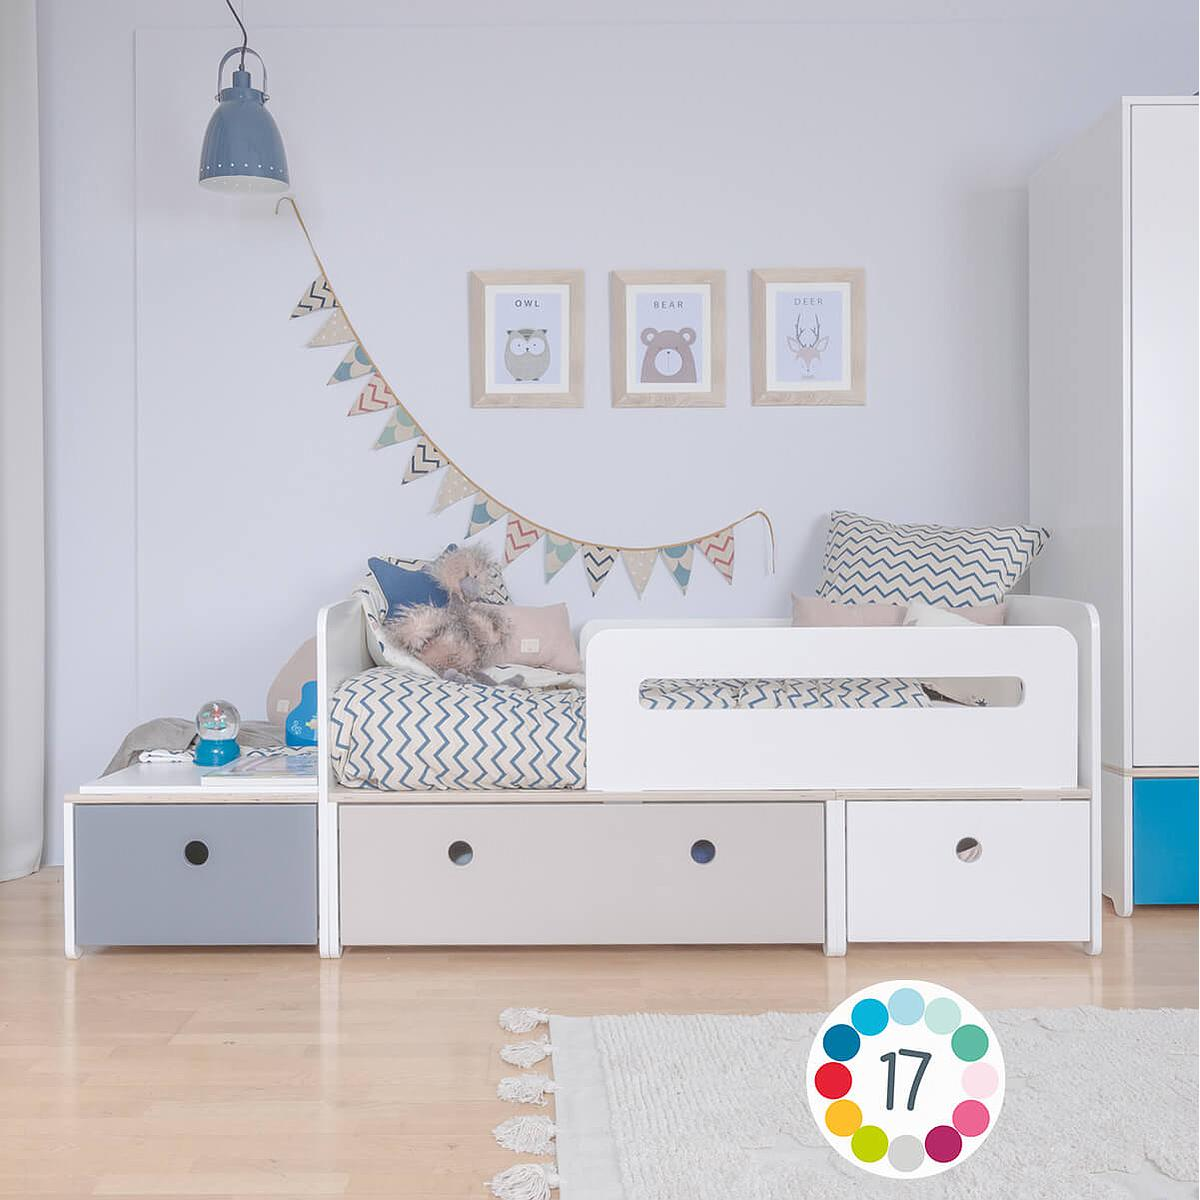 Cama evolutiva infantil 90x150/200cm COLORFLEX Abitare Kids space grey